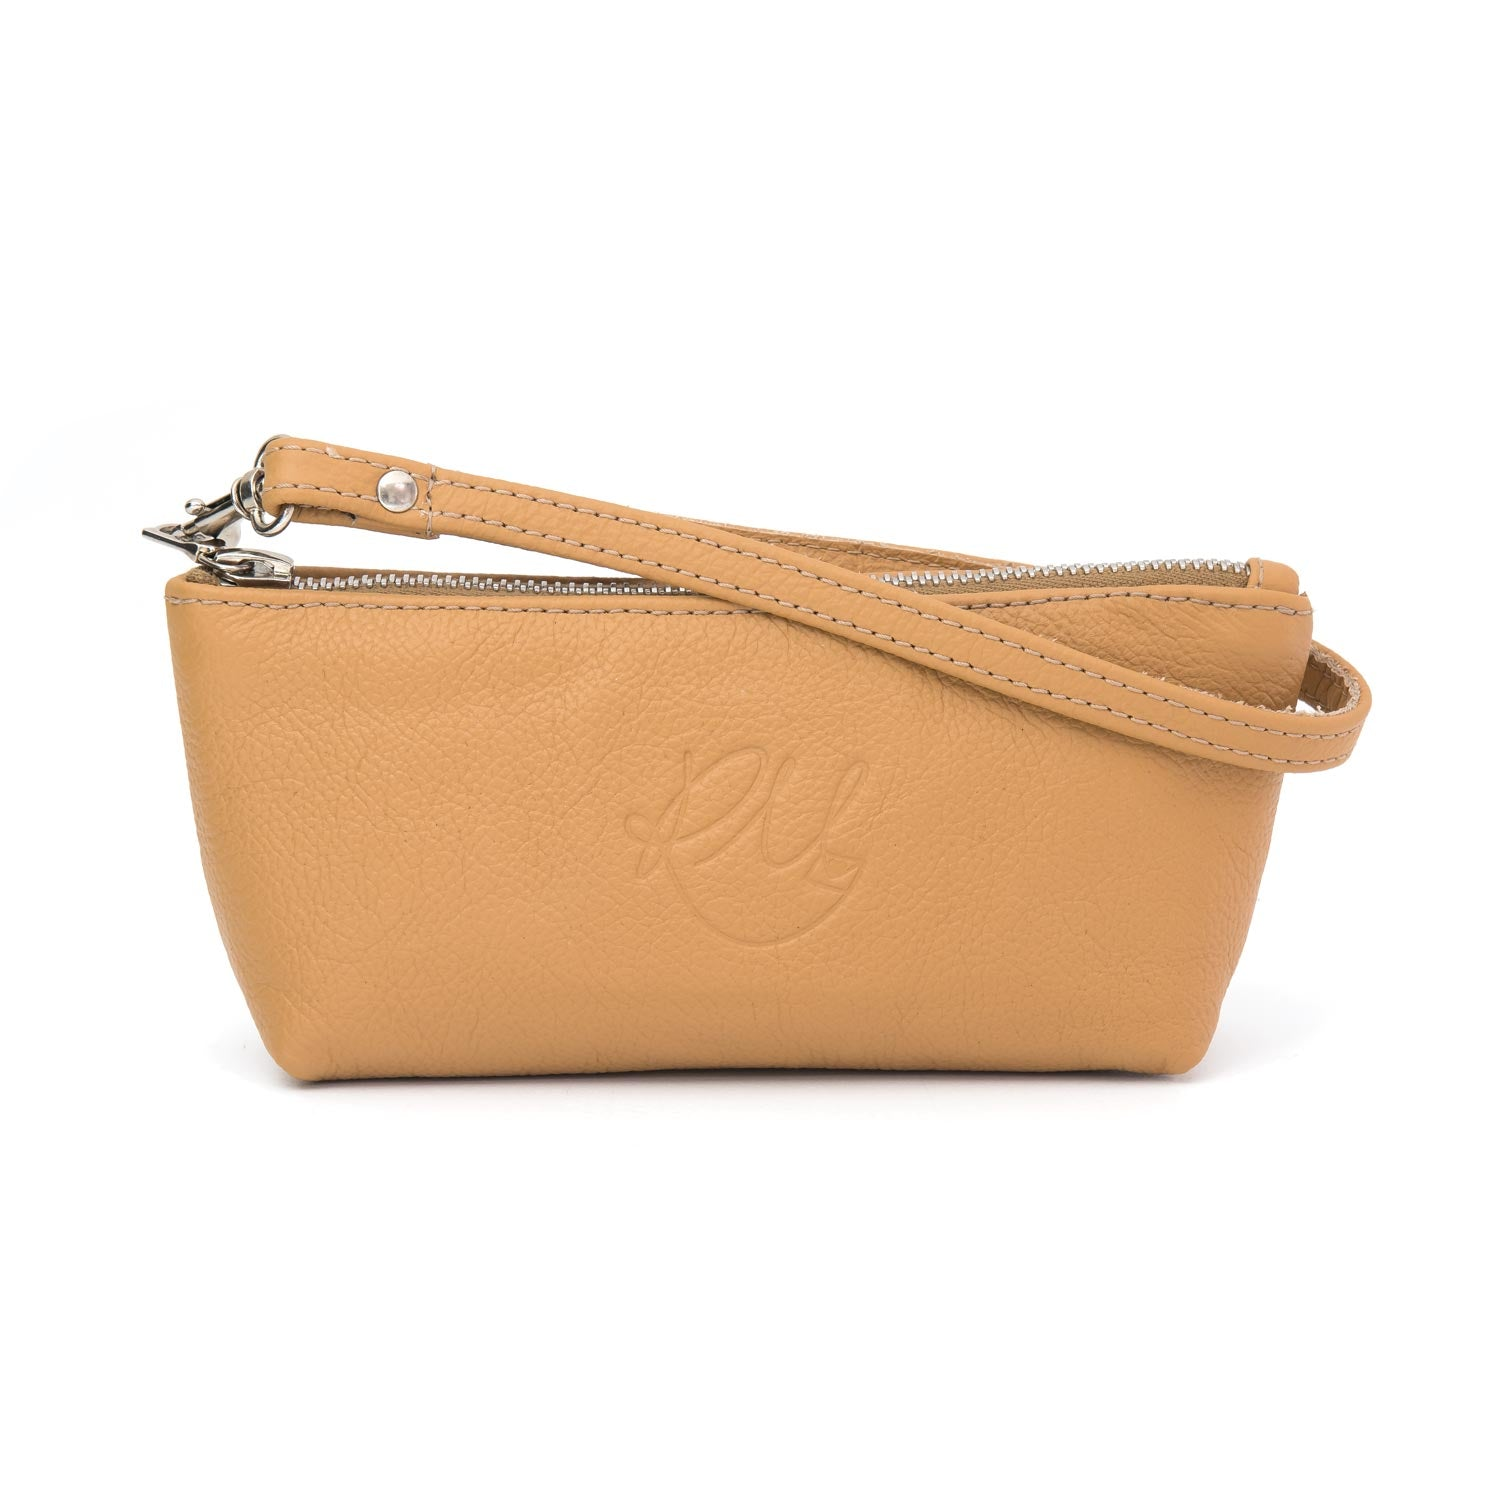 Poppy small leather clutch bag - Tan motorollo